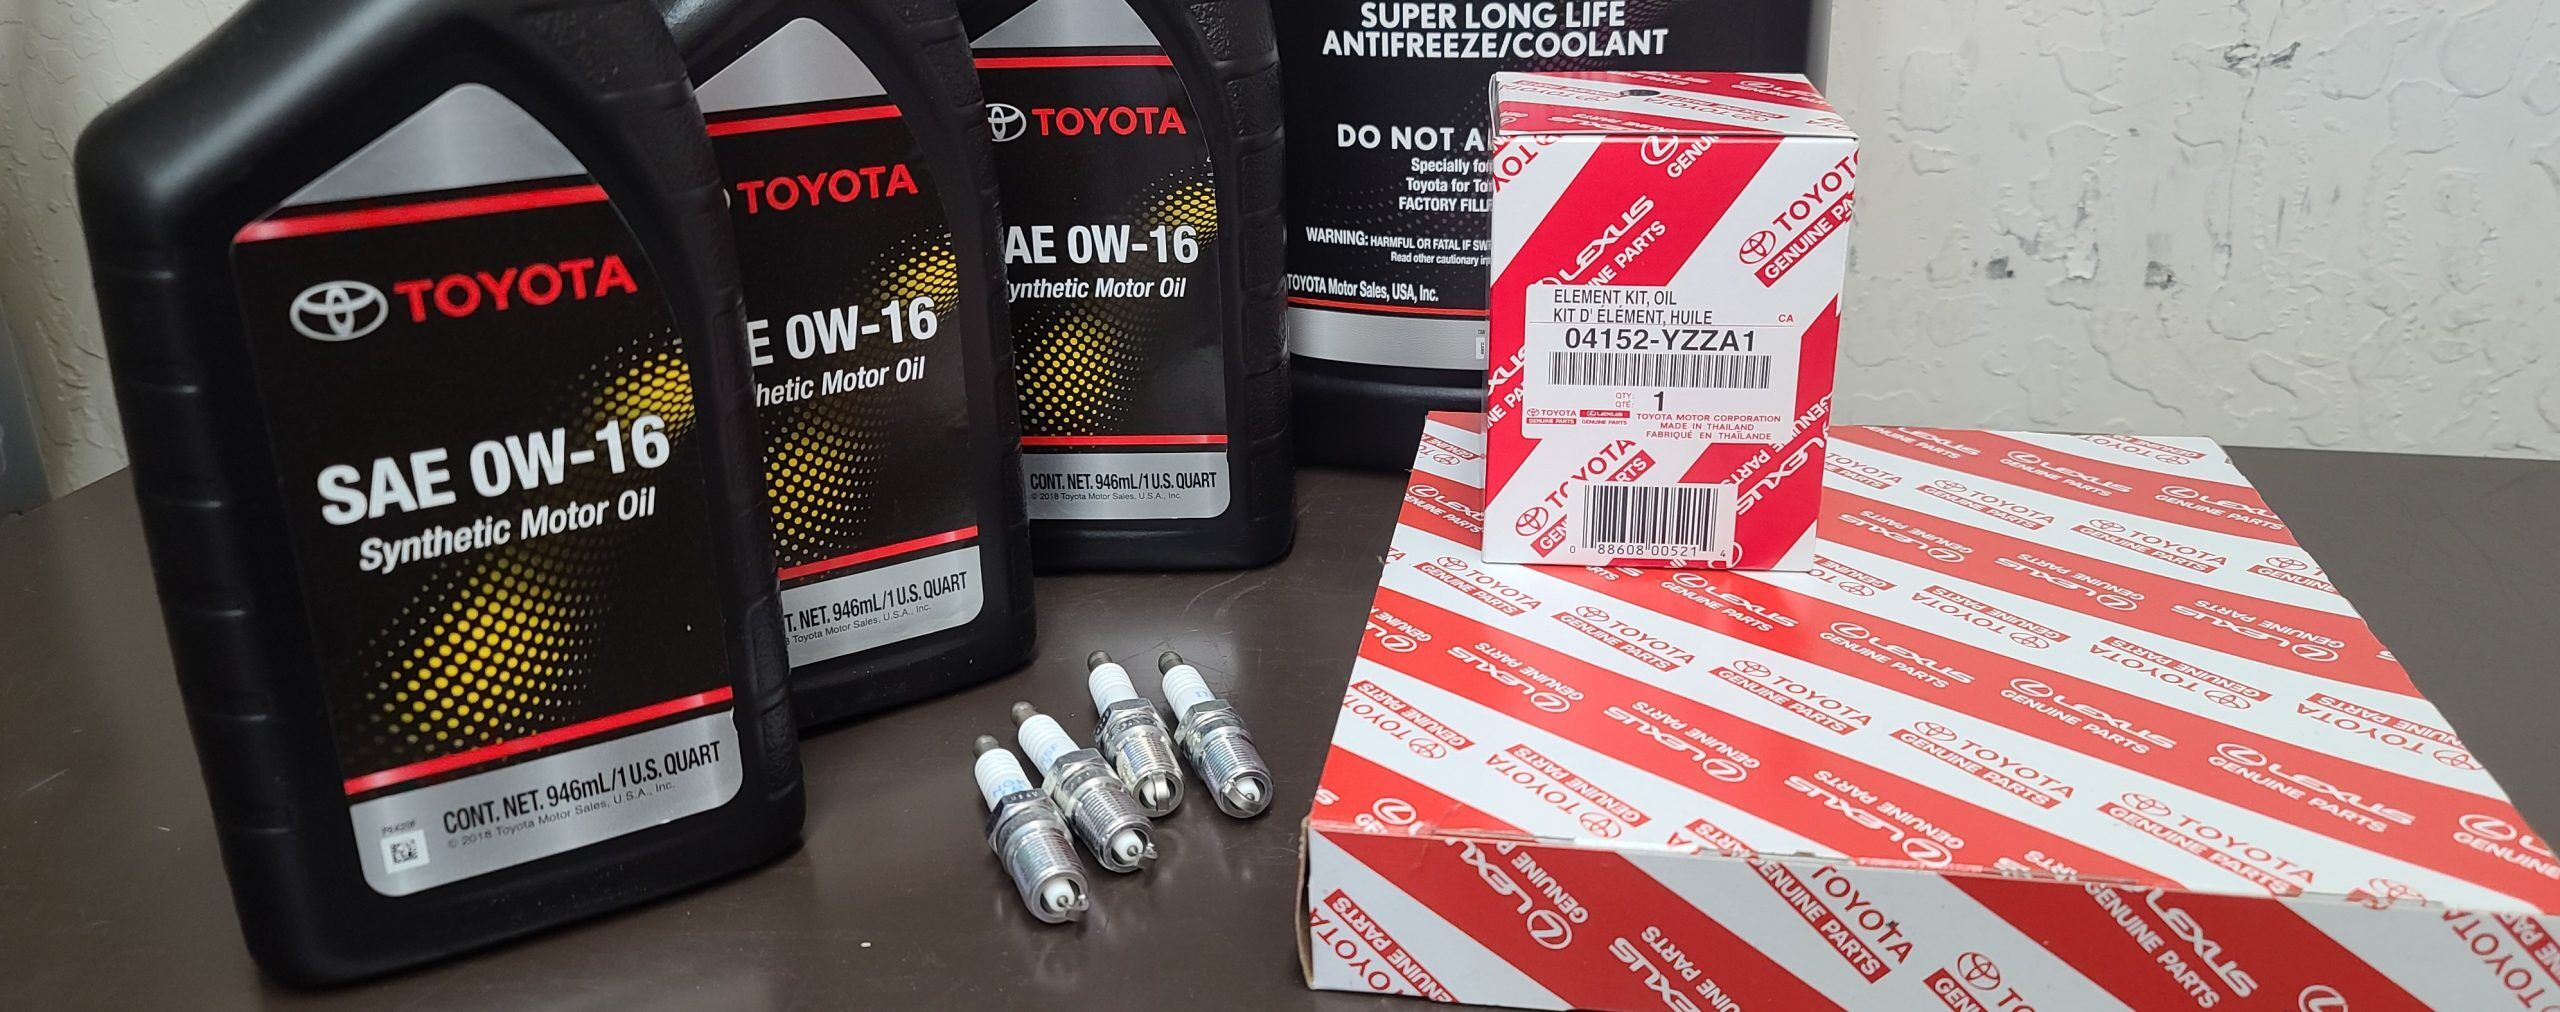 Toyota service parts: oil filter, air filter, spark plugs, and motor oil